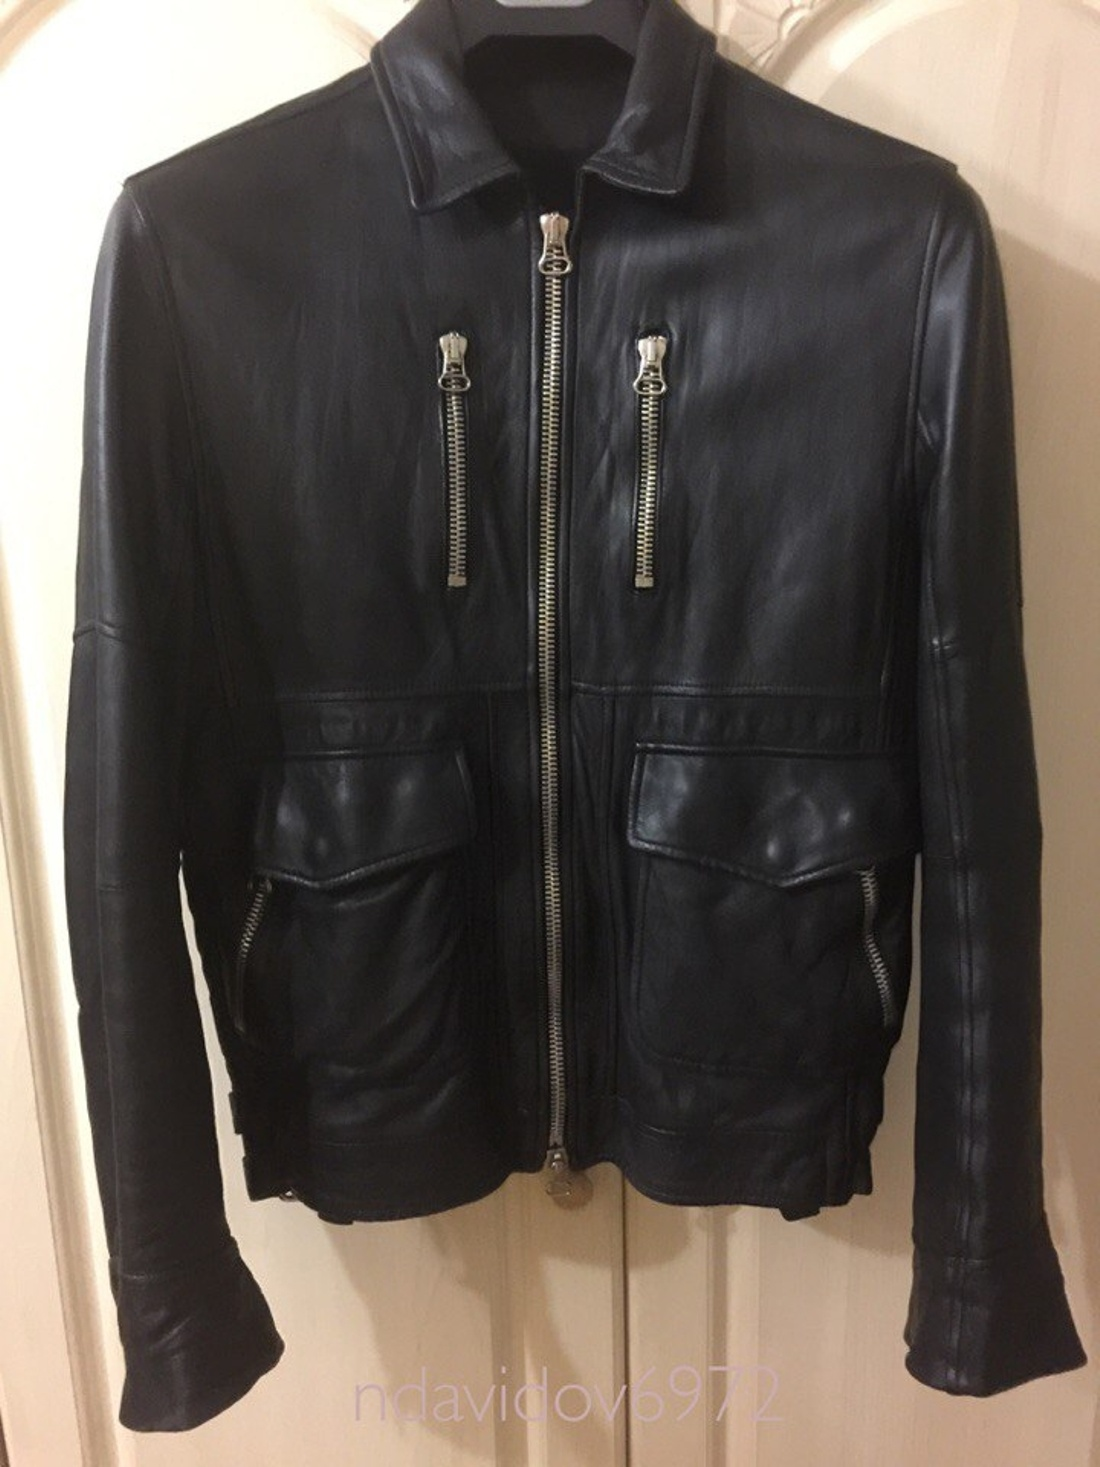 Balmain Paris Leather Jacket | Balmain Dress Price | Balmain Leather Jacket